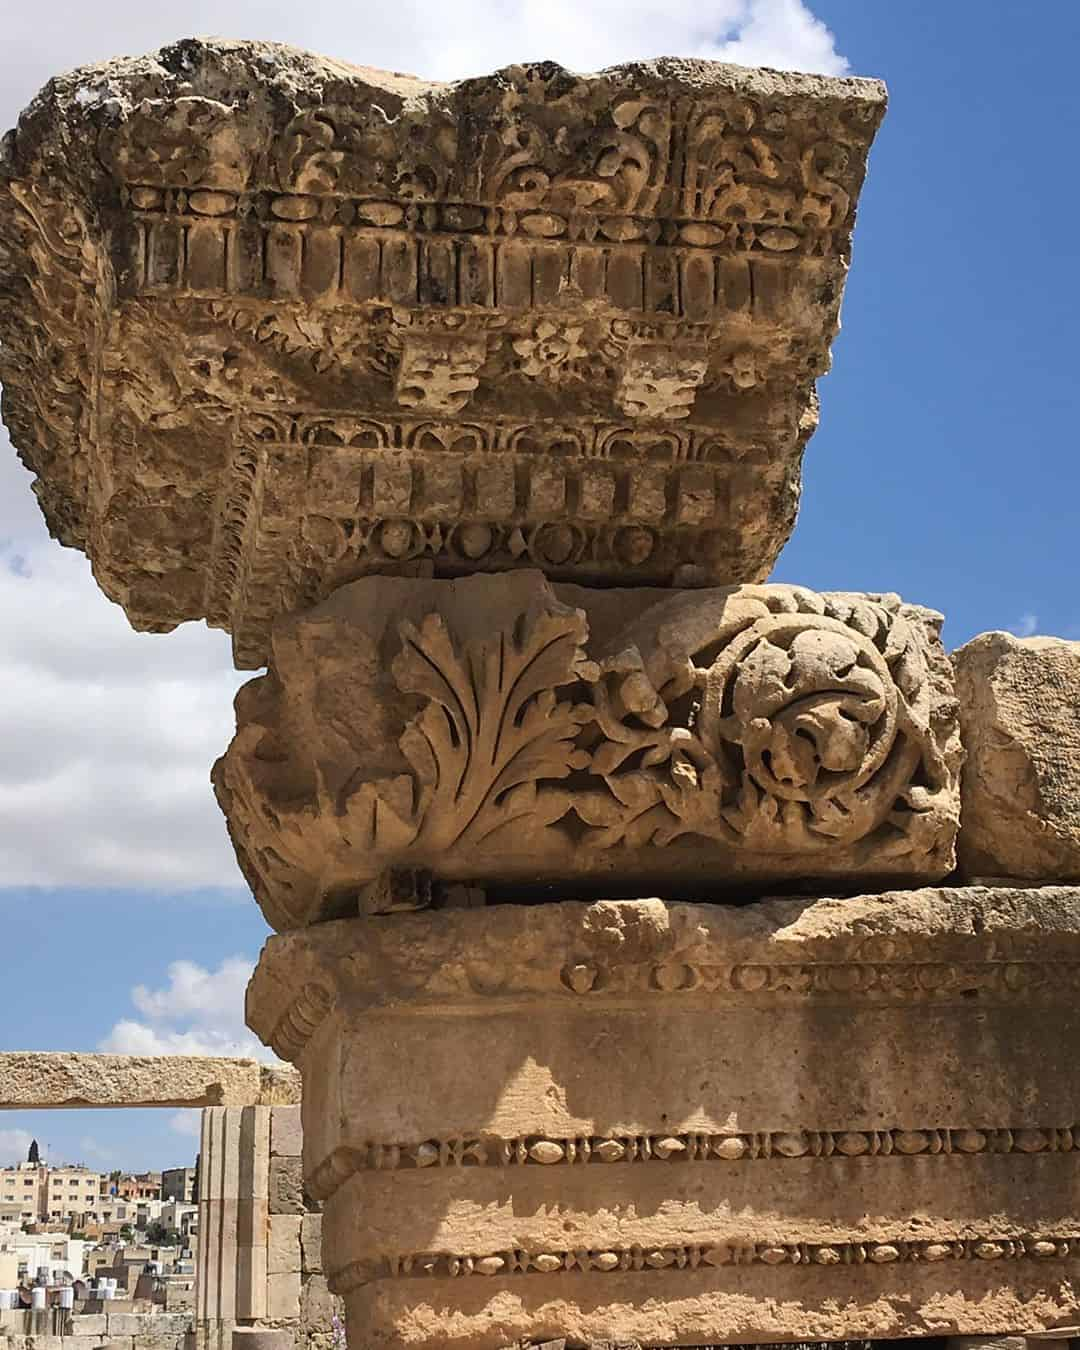 The crumbling ruins of Jerash